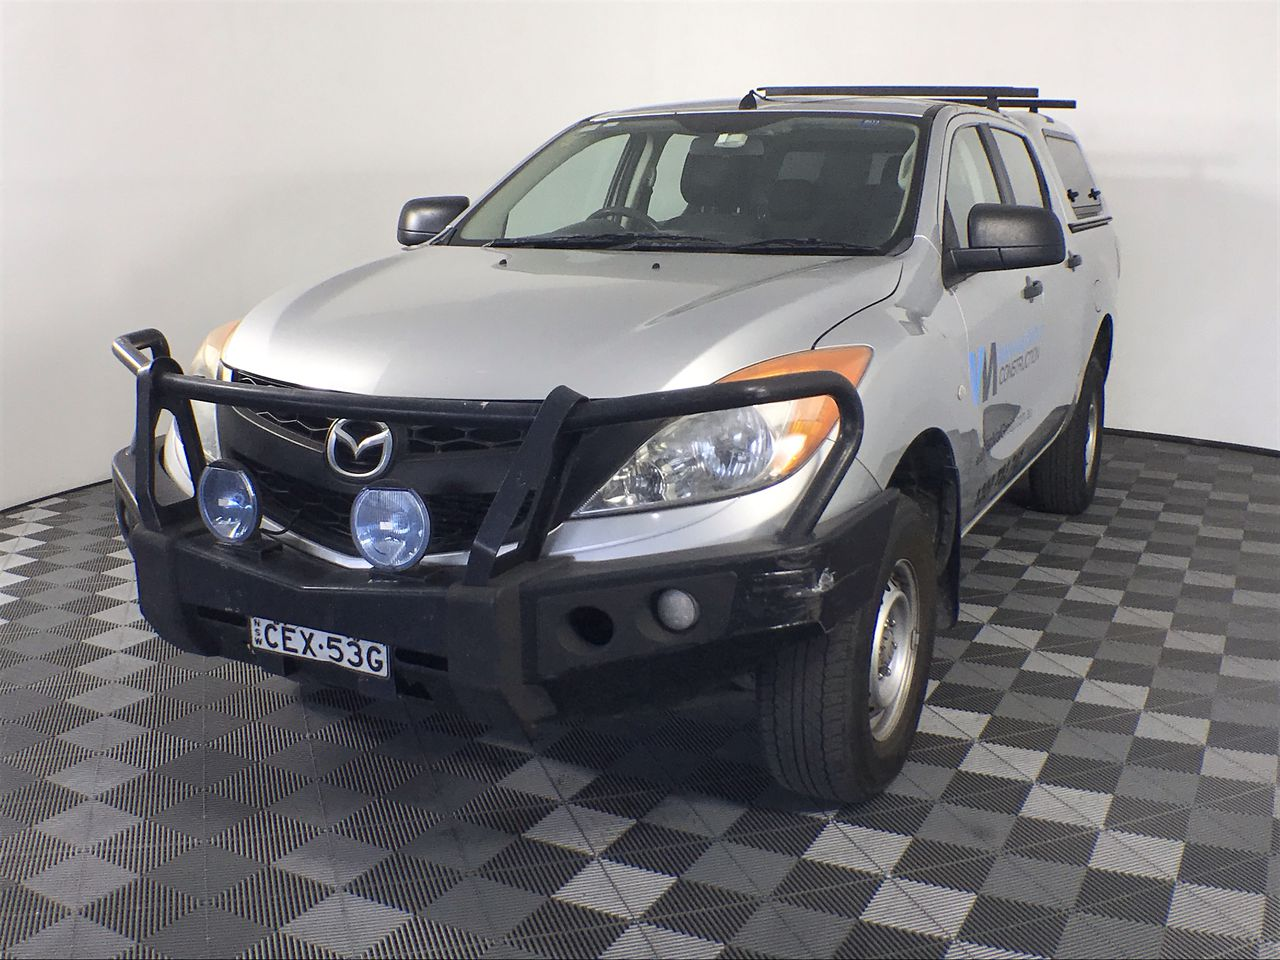 2011 Mazda BT-50 4X2 XT Turbo Diesel Automatic Dual Cab Ute